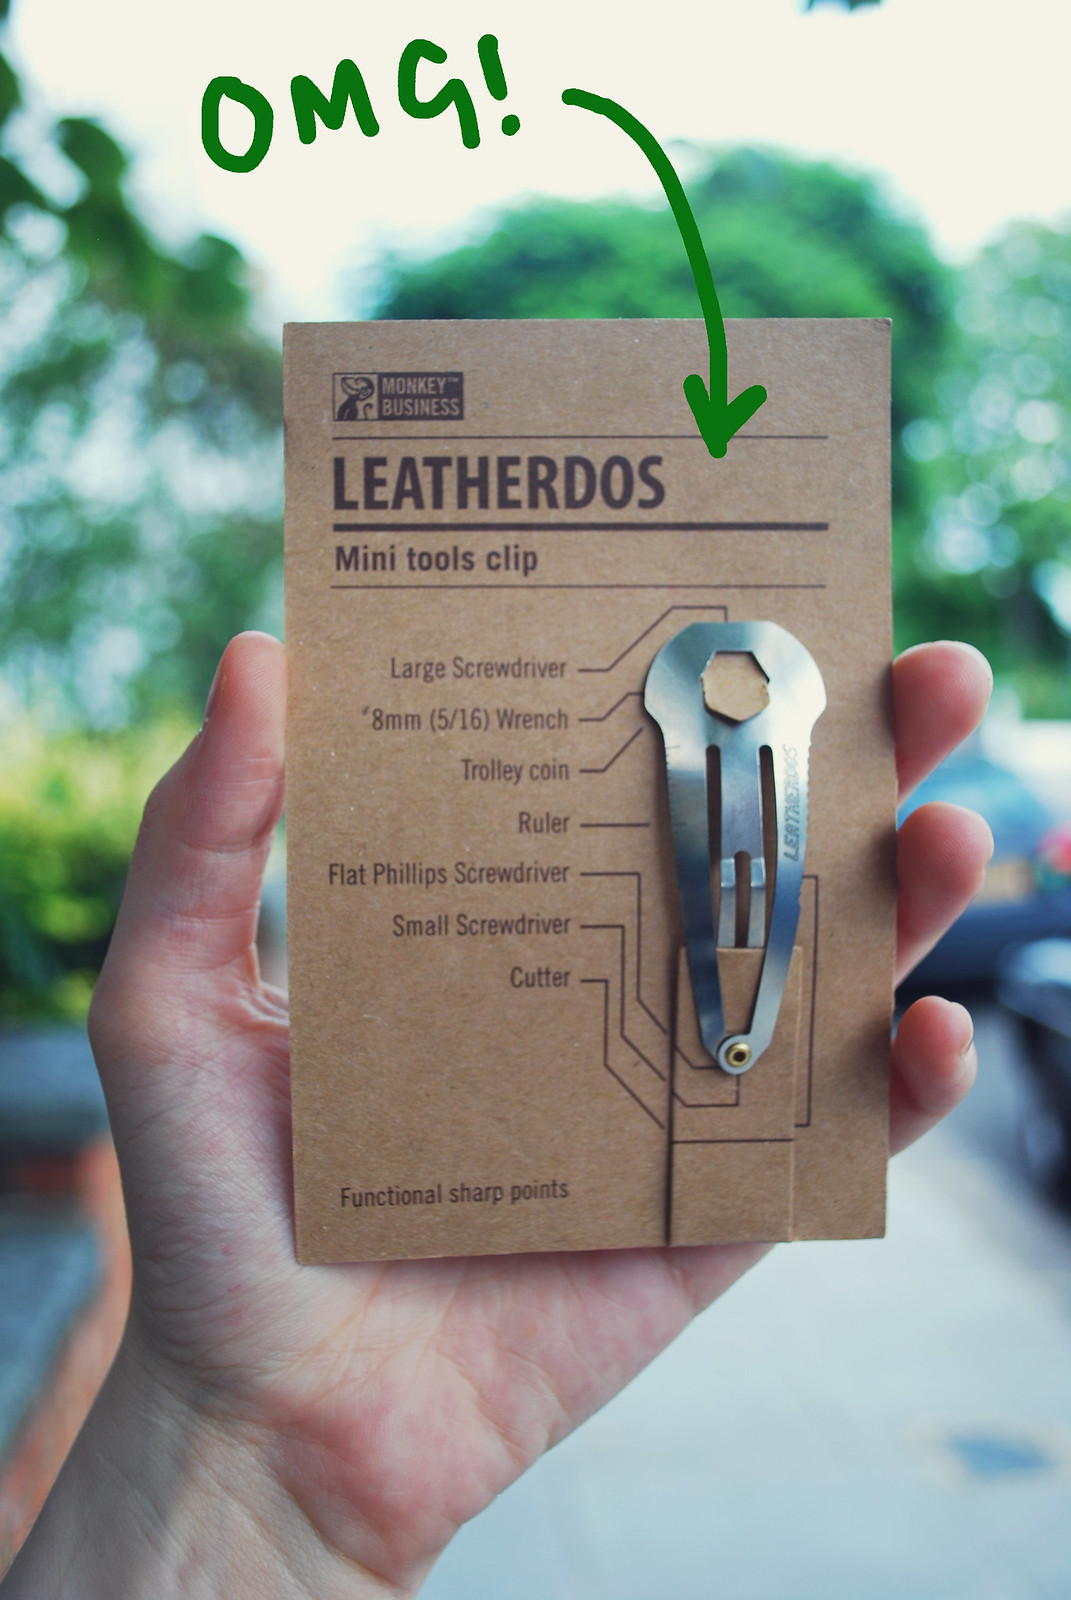 Leatherdos review